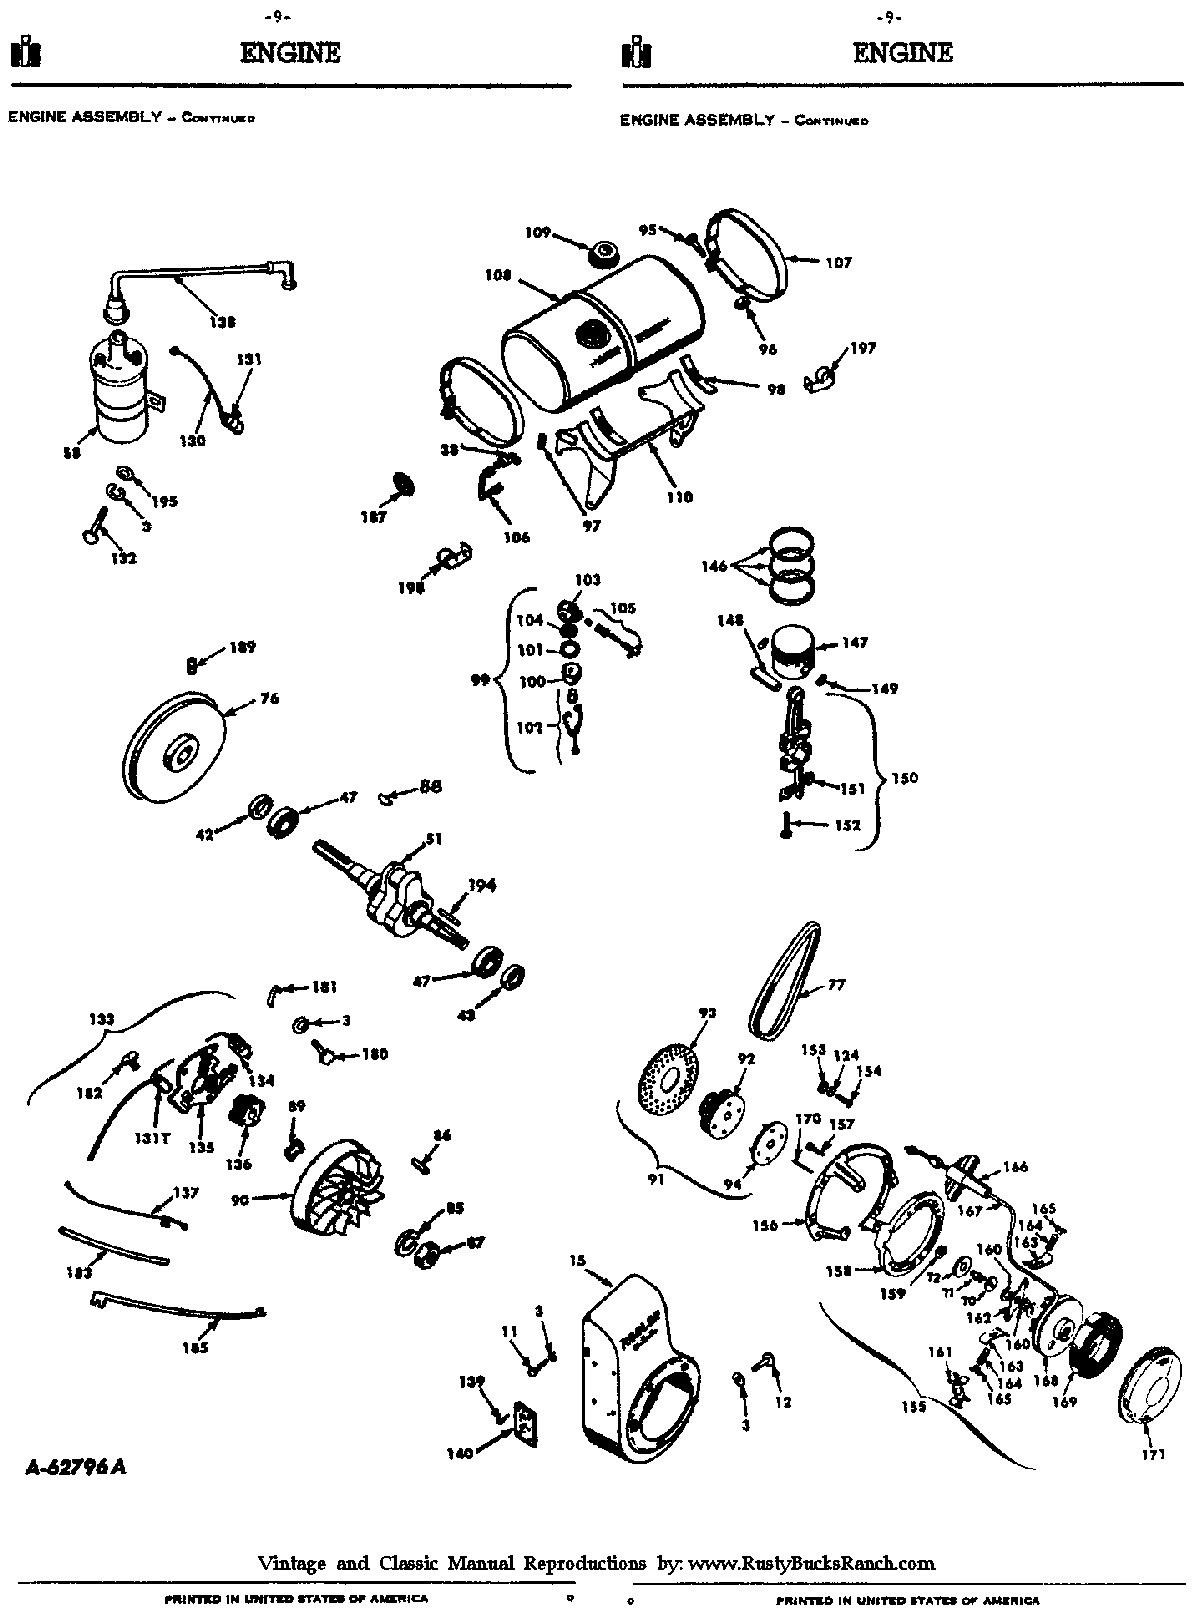 Cub Cadet Lt1042 Parts Diagram Rusty Bucks Ranch Cub Cadet